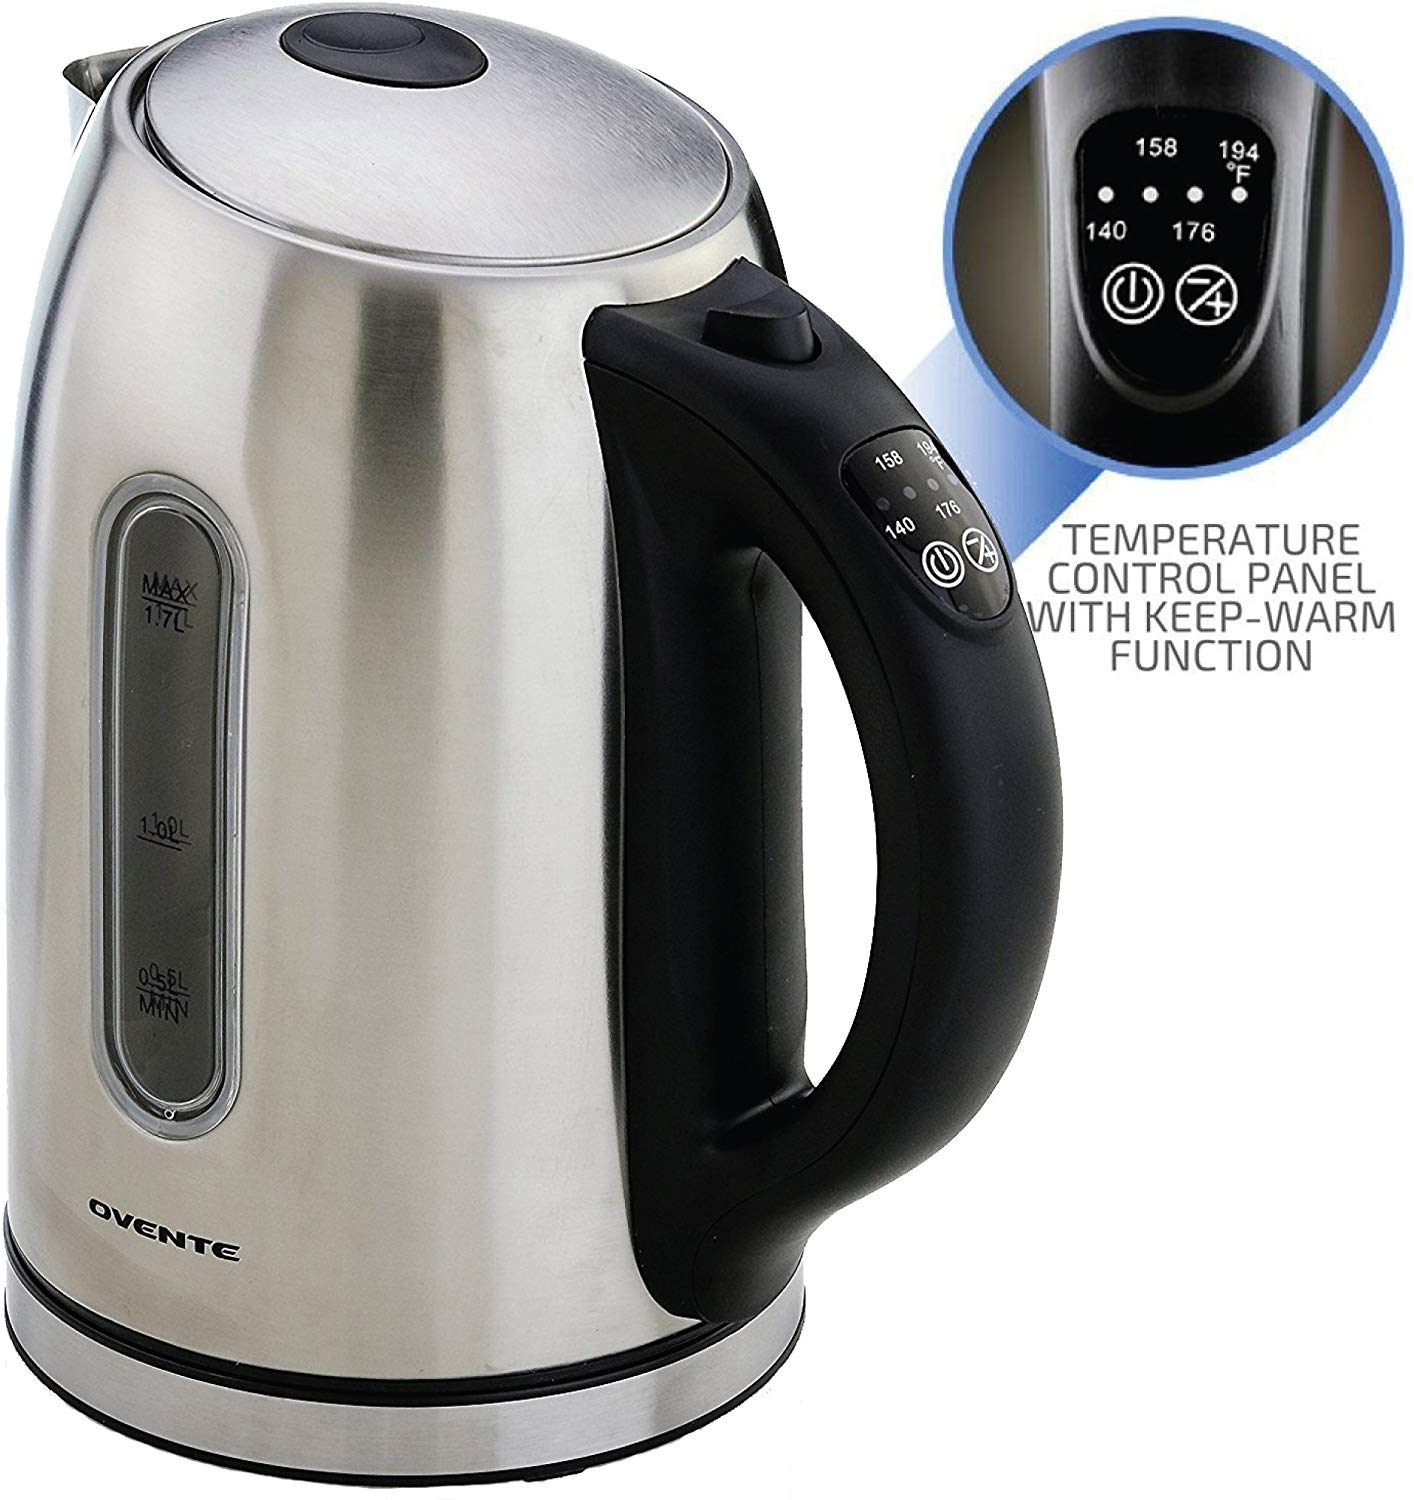 Ovente KS89S Stainless Steel Electric Kettle